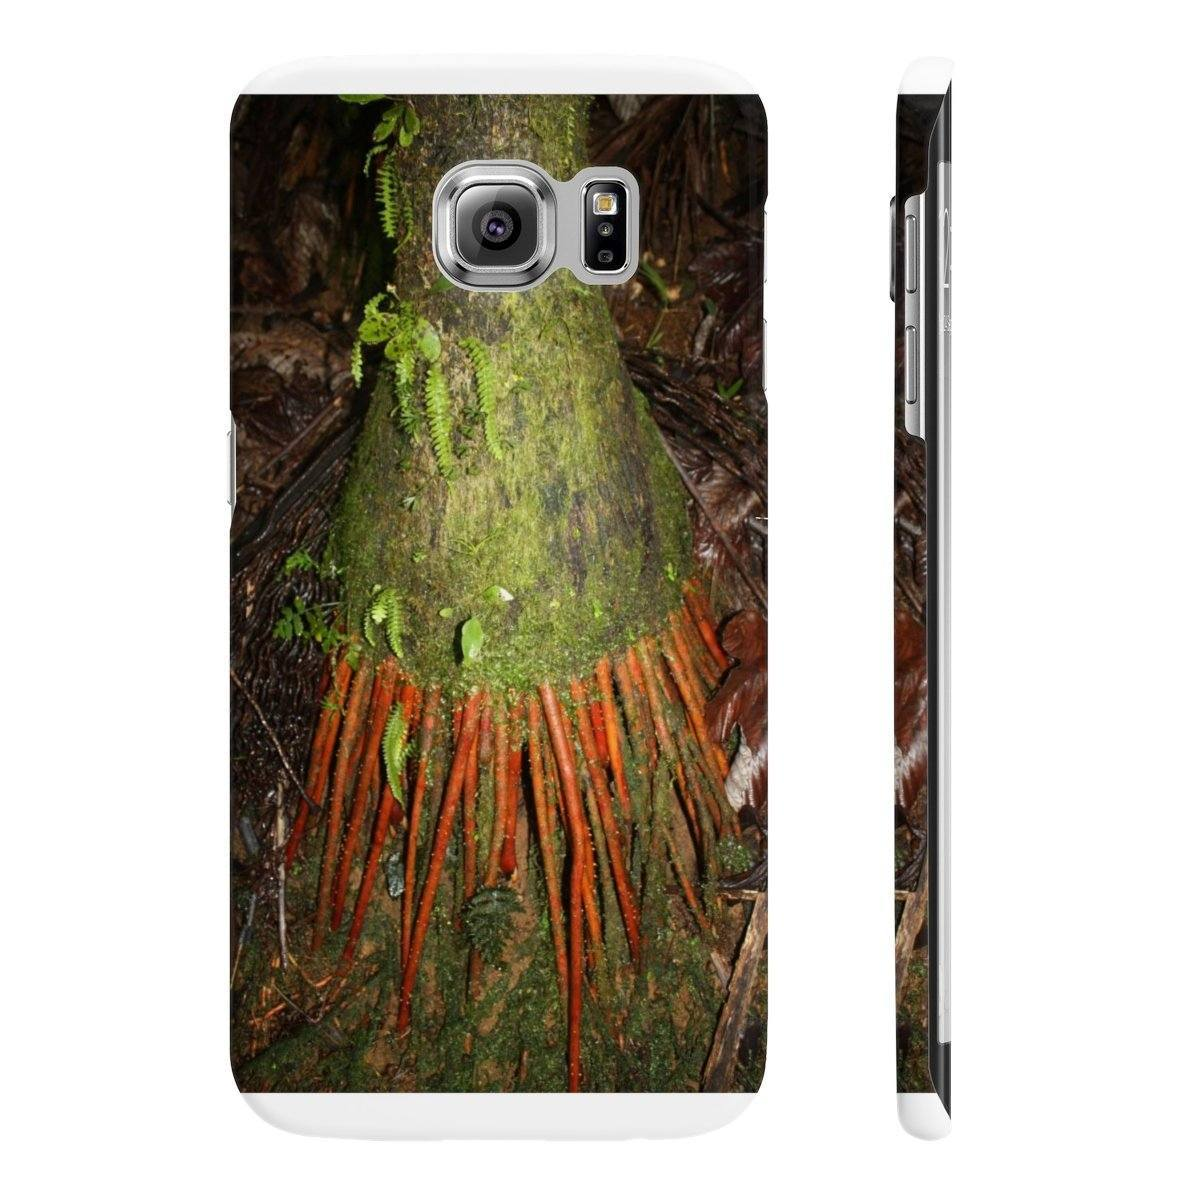 Wpaps Slim Phone Cases - Sierra Palm roots Phone Case Printify